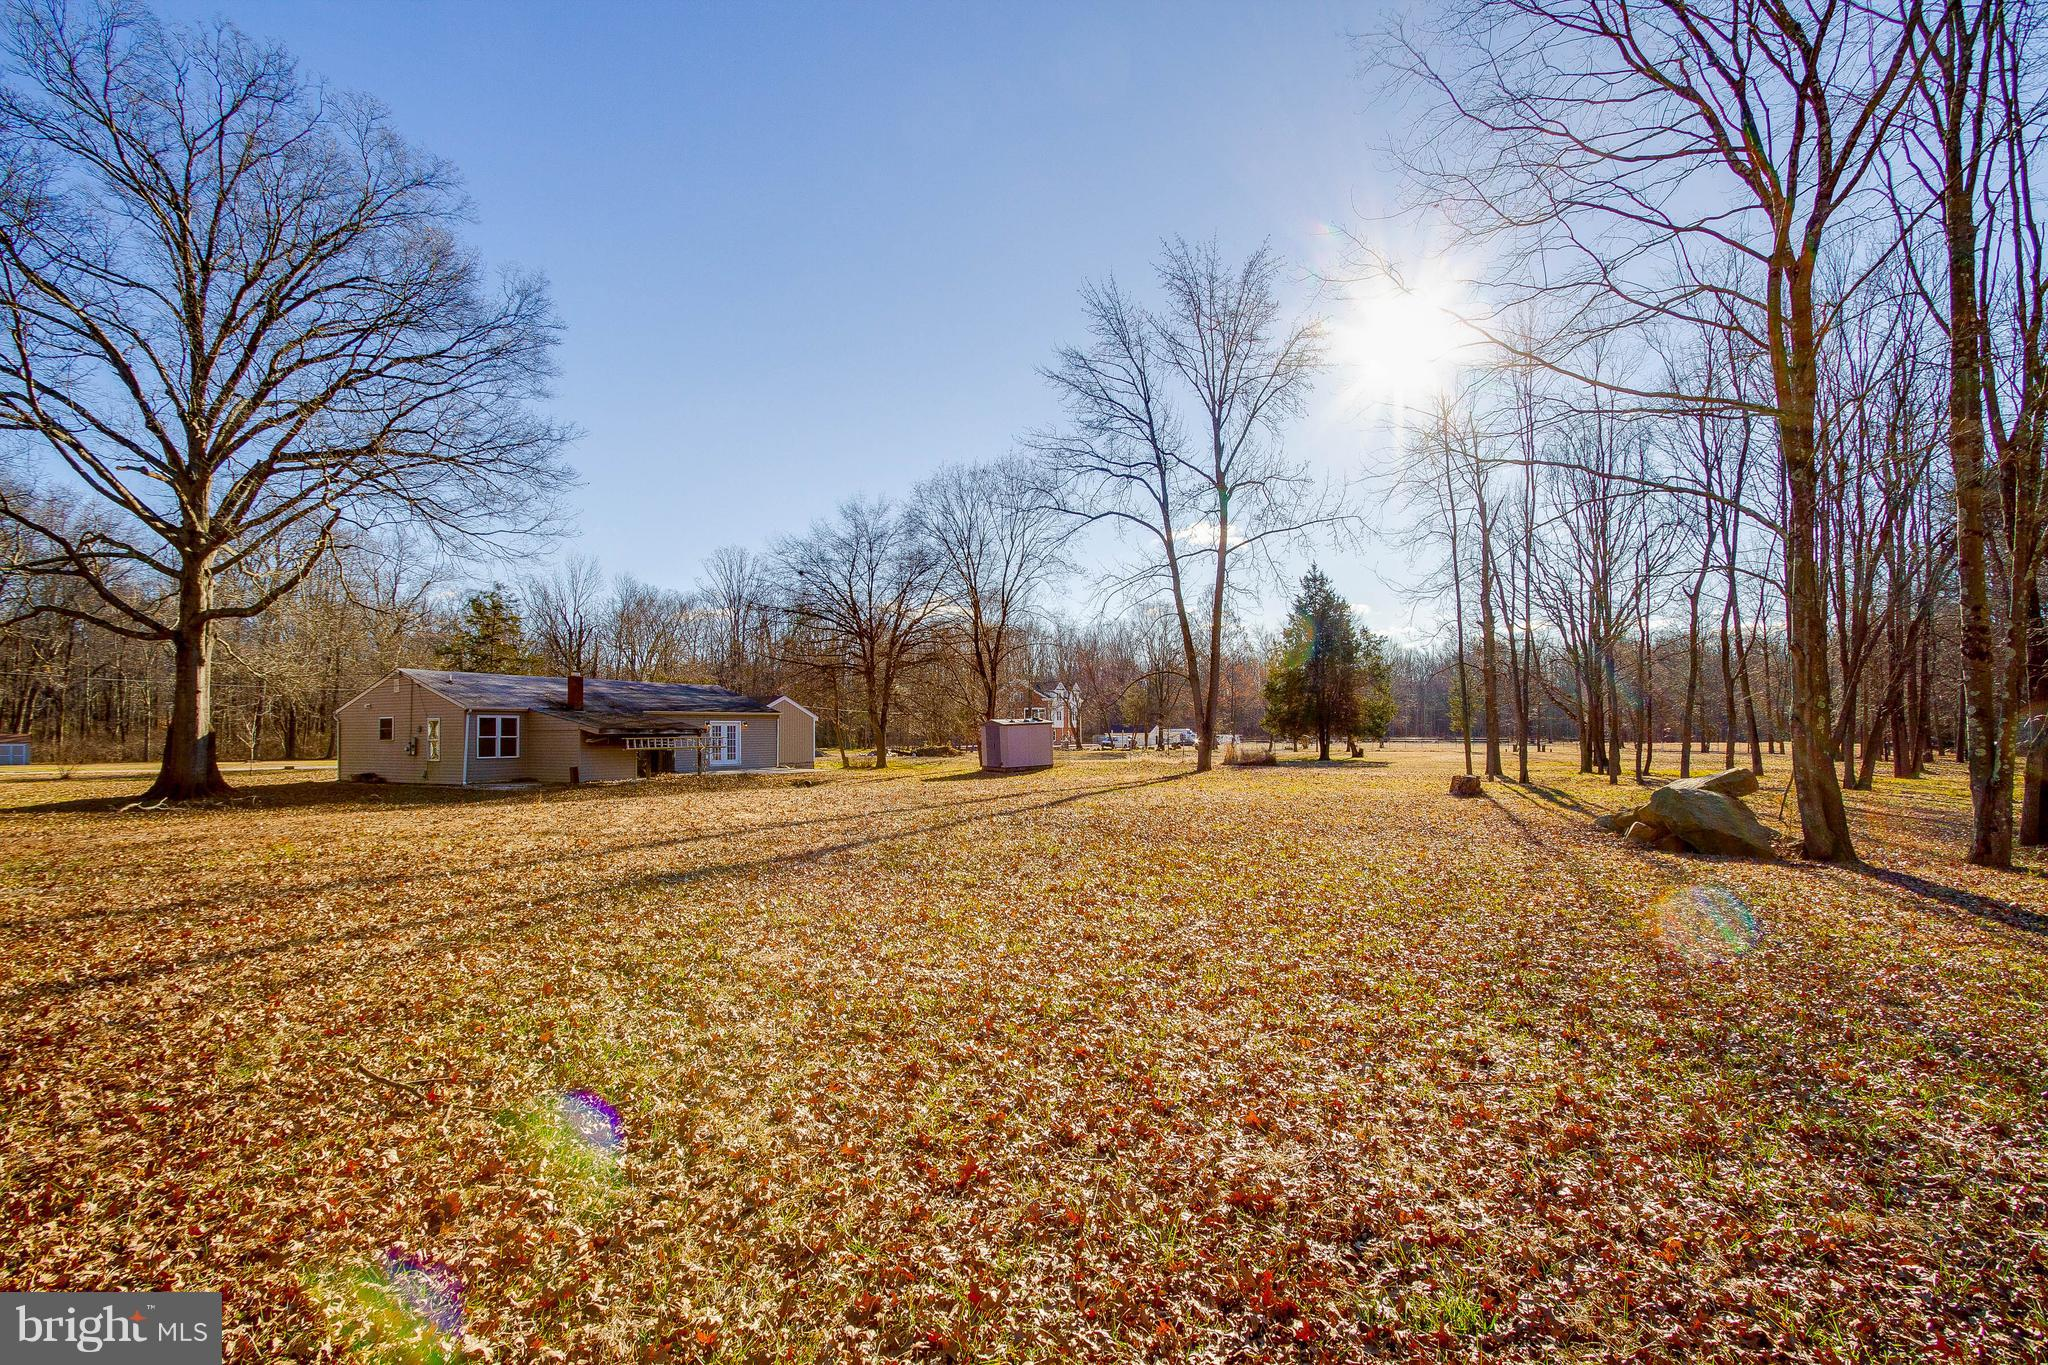 Location, location, location. Near Kingstowne, Beltway and metro. Rarely available 3.52 ACRES - great lot for development - NO EASEMENTS OR COVENANTS AND NOT IN FLOOD ZONE.  Quaint studio home with hardwood flooring, newer appliances - meticulously maintained.